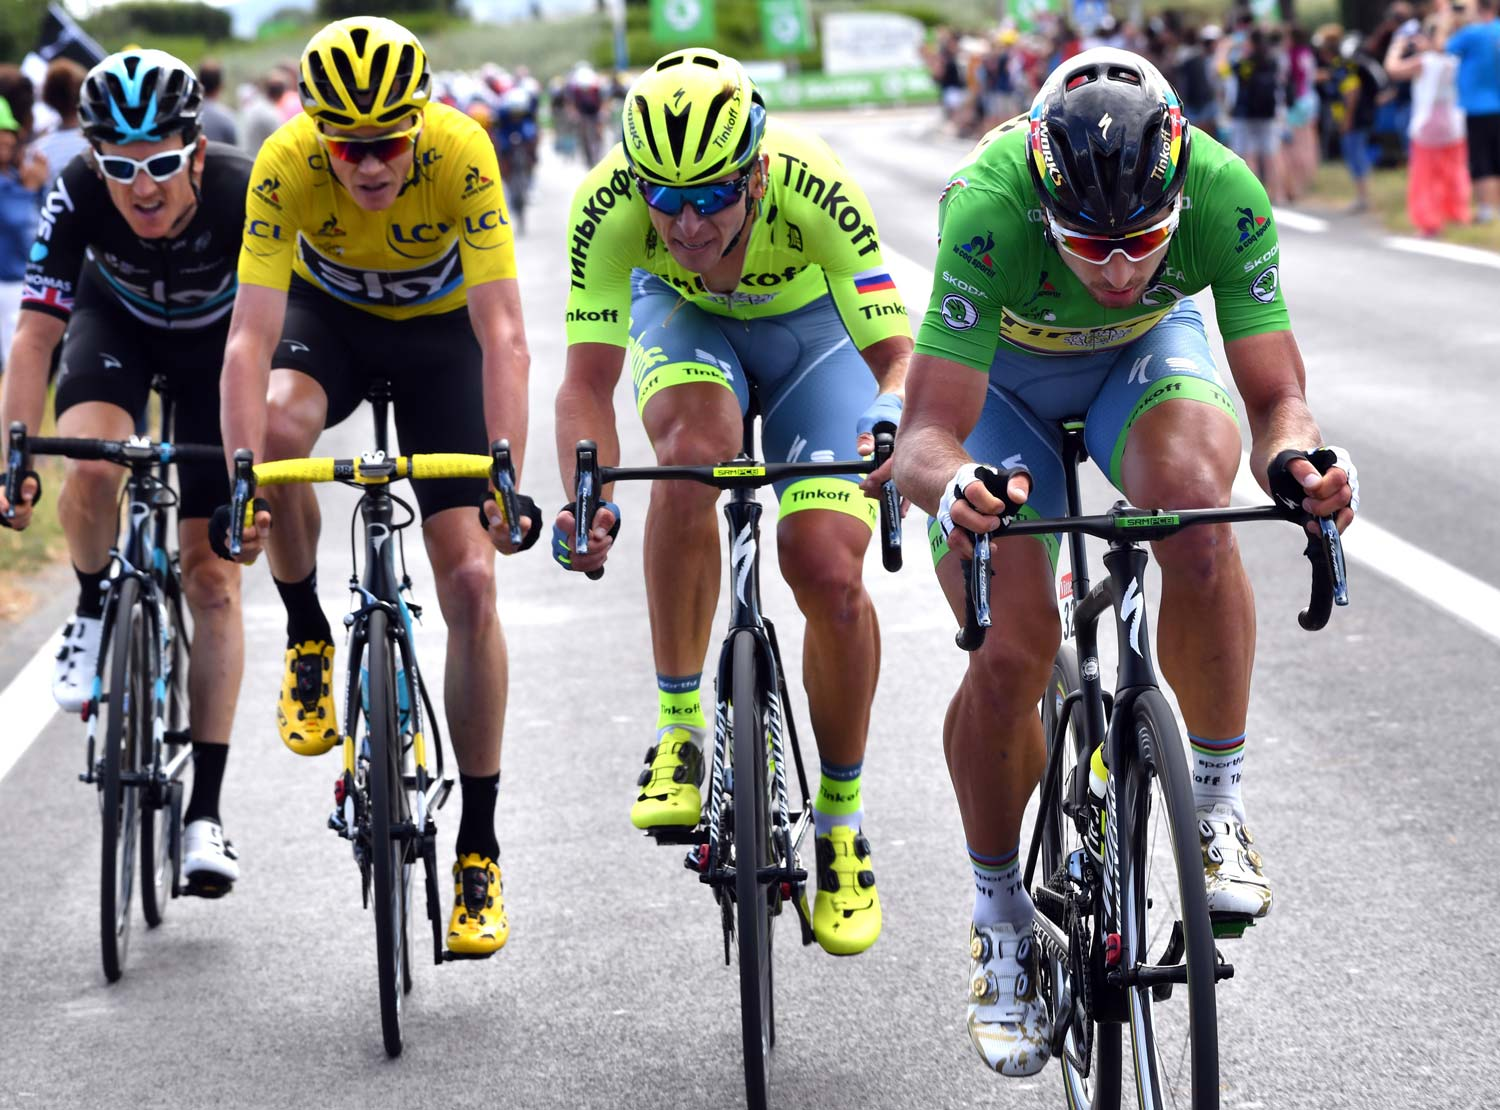 From left to right: Geraint Thomas, Chris Froome, Maciej Bodnar and Peter Sagan. Photo: Graham Watson